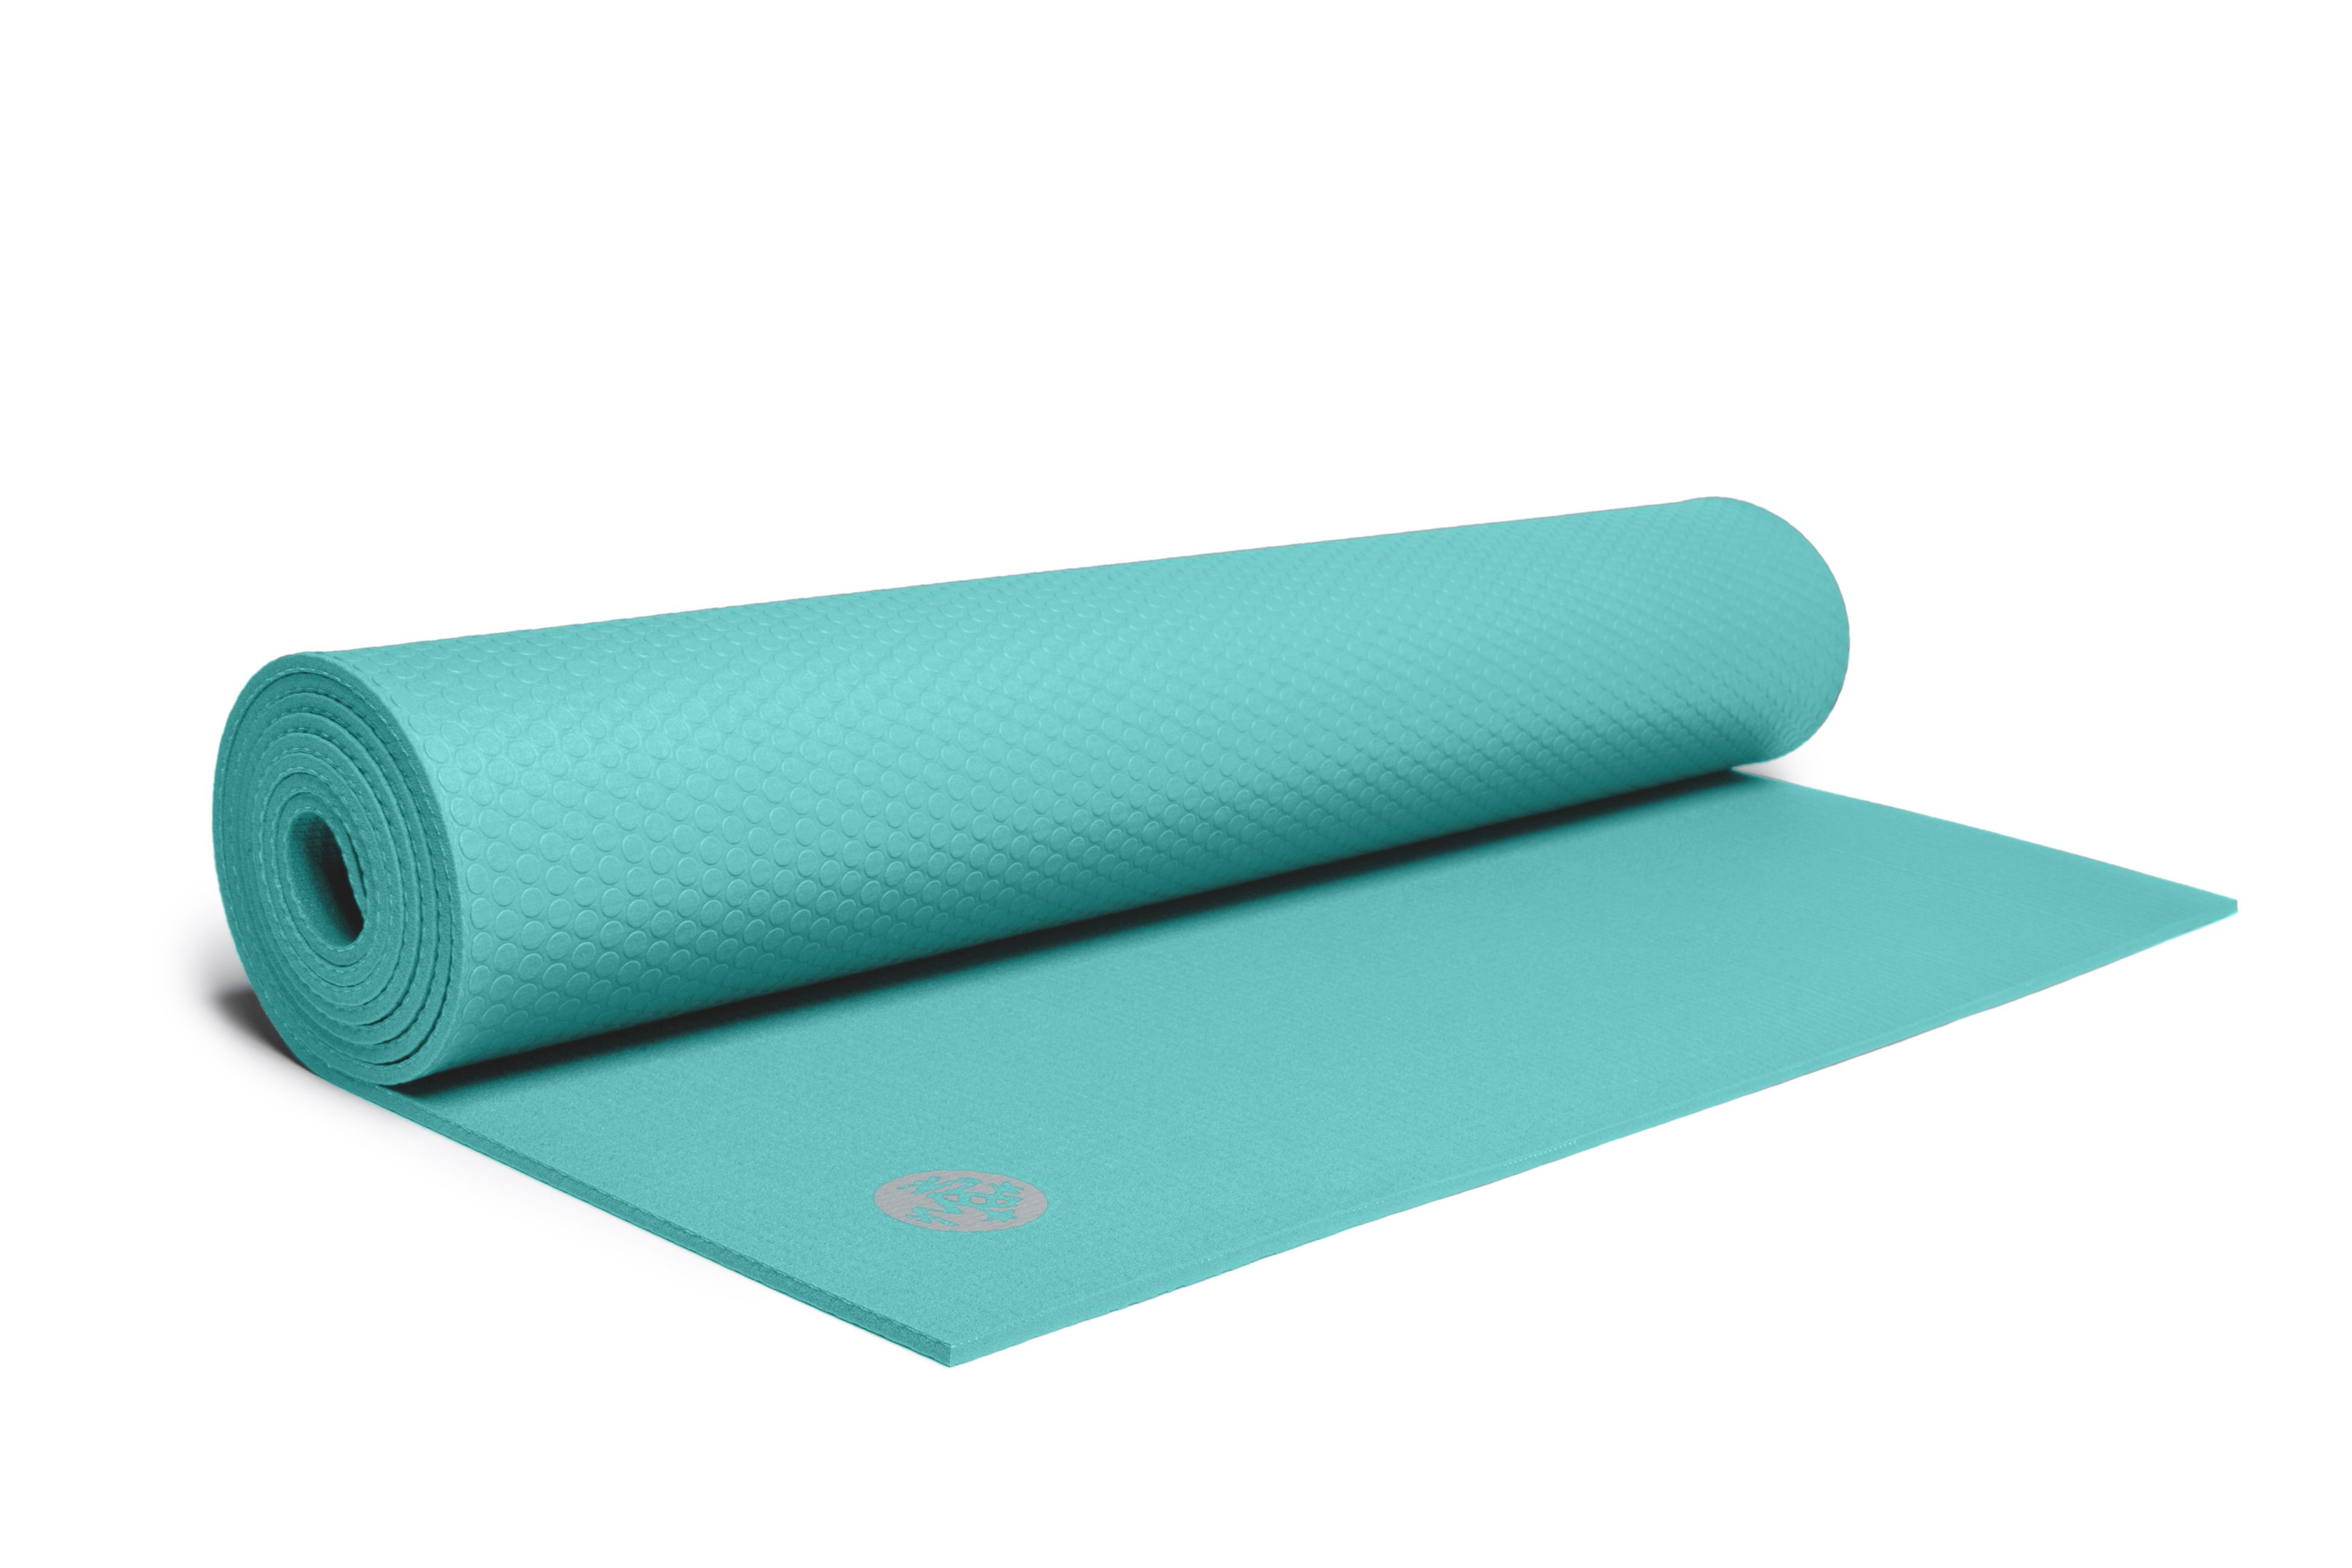 Prolite Mat 71 I Really Need A Lighter Mat I Want To Try This One I Love The Color Poppy I Can Root Chakra My Tale Yoga Mats Best Manduka